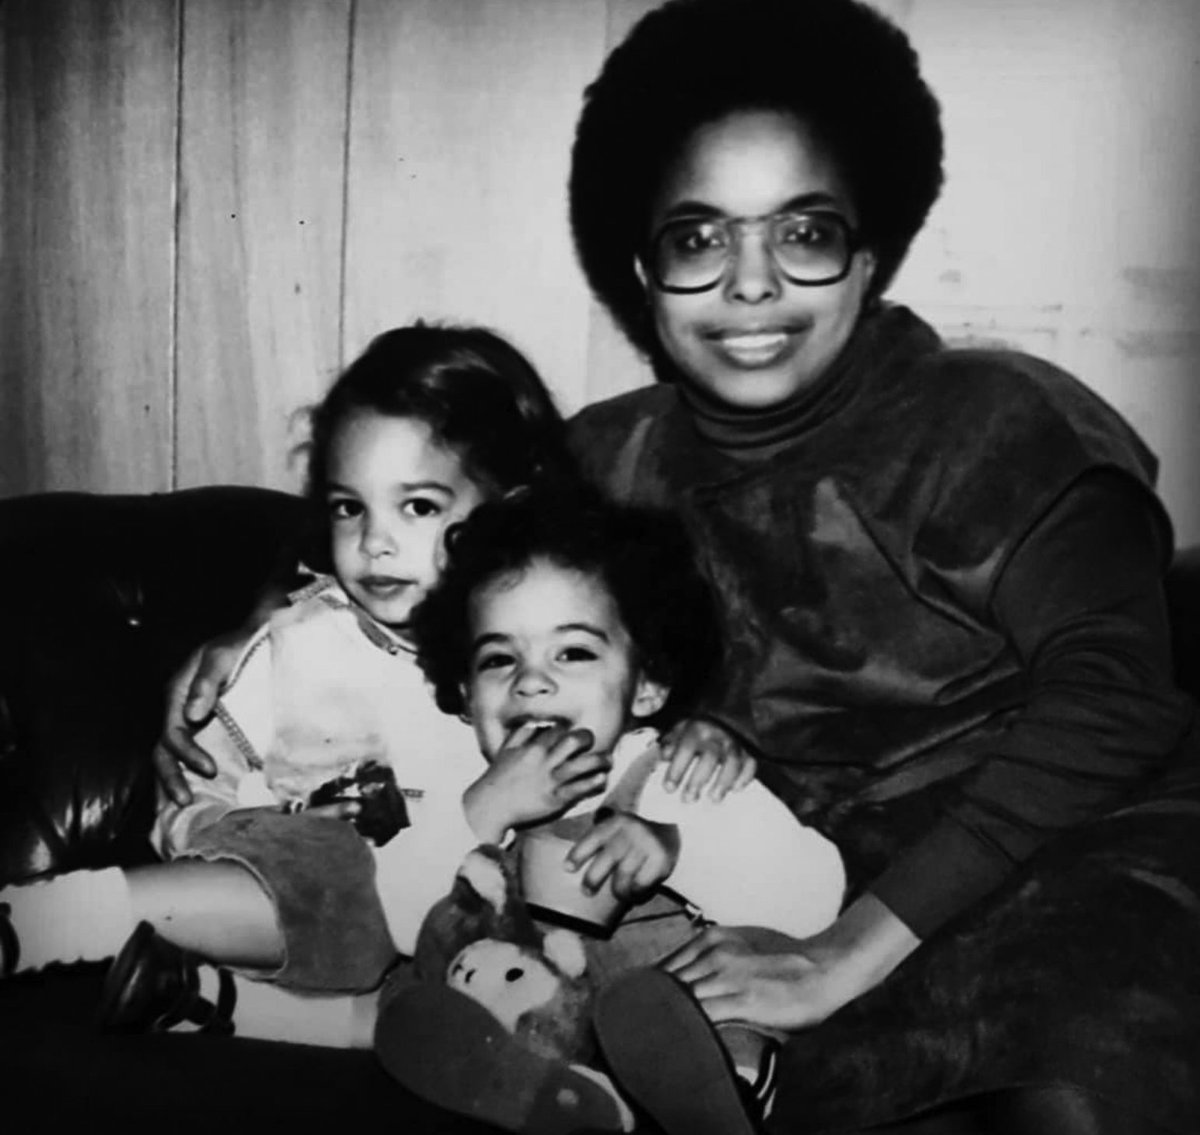 In high school, Naima found her mamas picture on the bottom corner of her history book, when they got to the truncated review of the civil rights era. These maternal giants of ours raised us right, so we celebrate them every day! #mama #mothersday #mamaeverything #hero